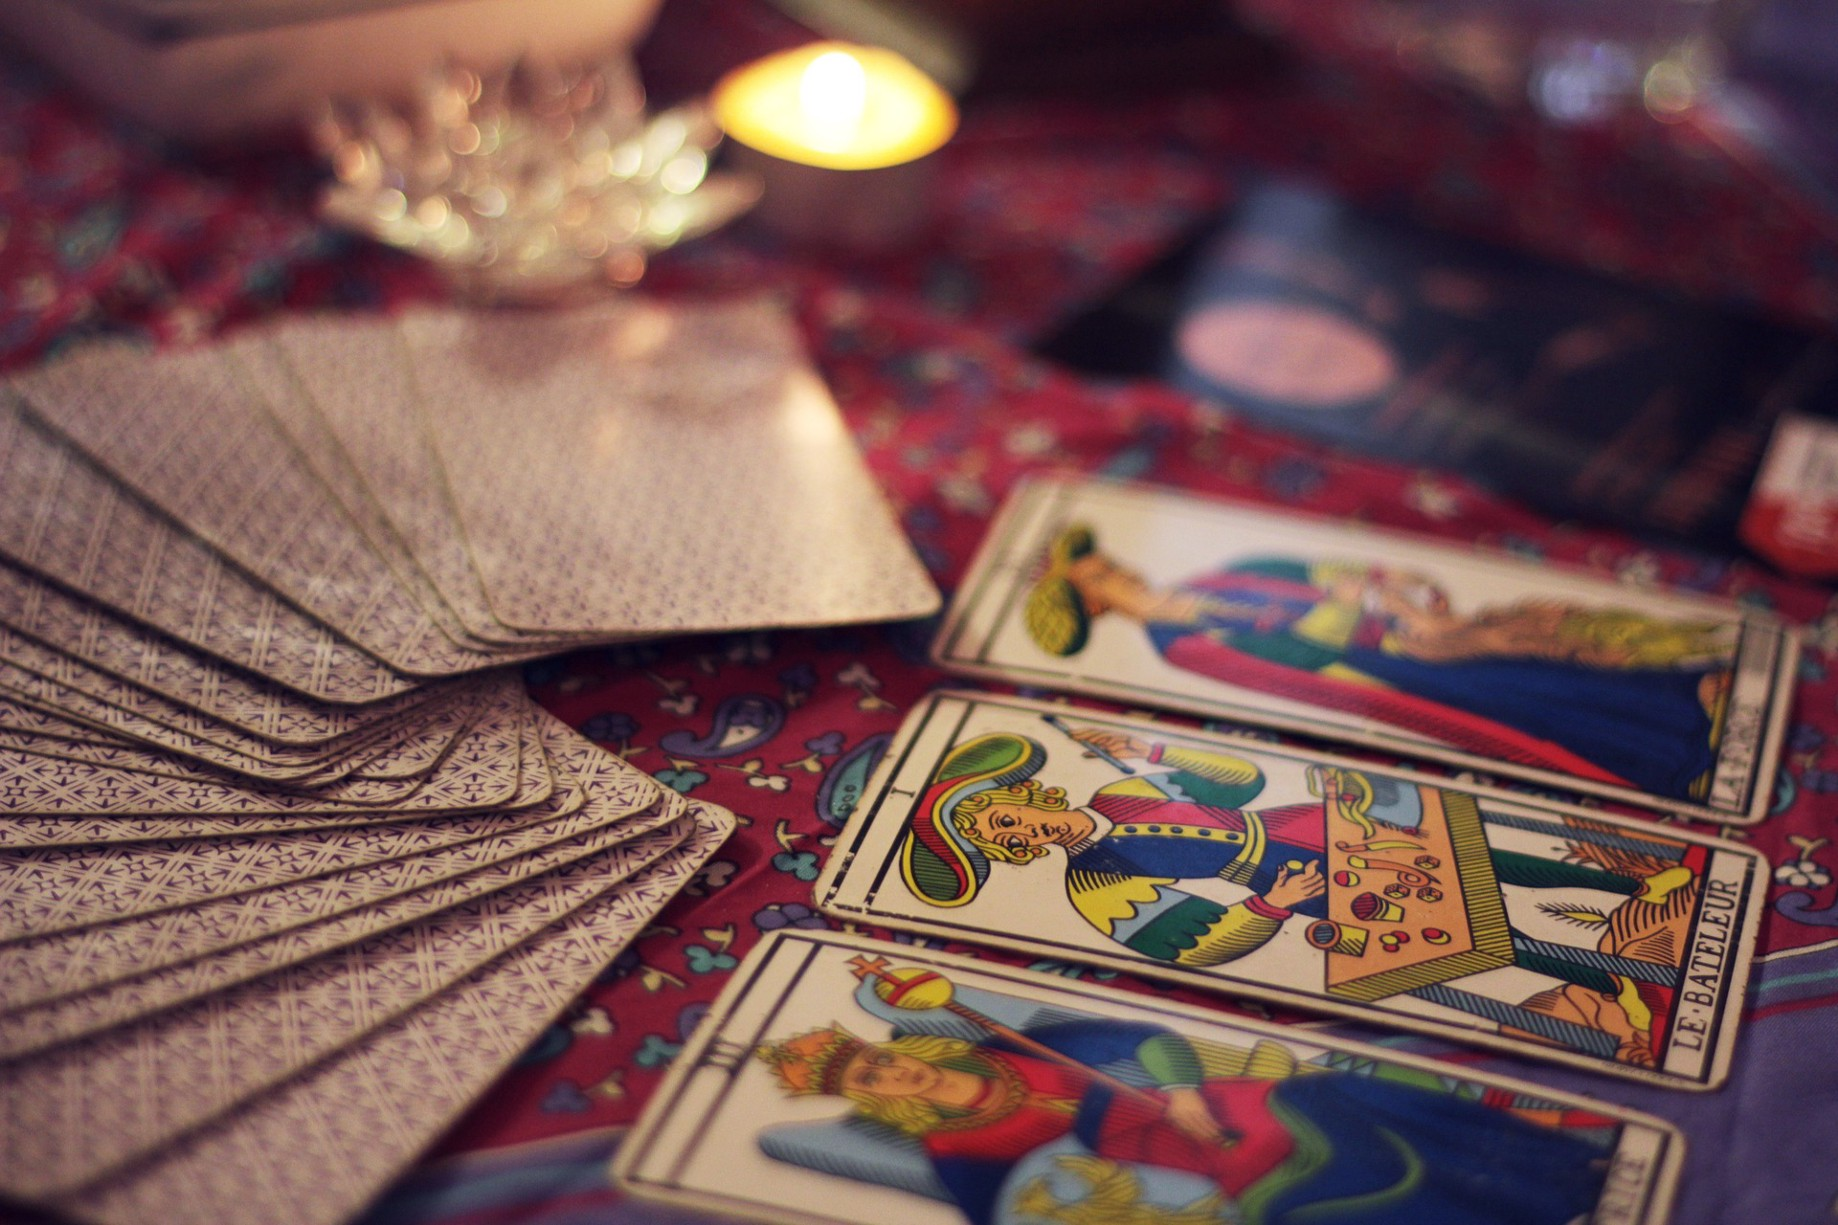 All About Tarot: Everything You Need to Know about Tarot Card Reading